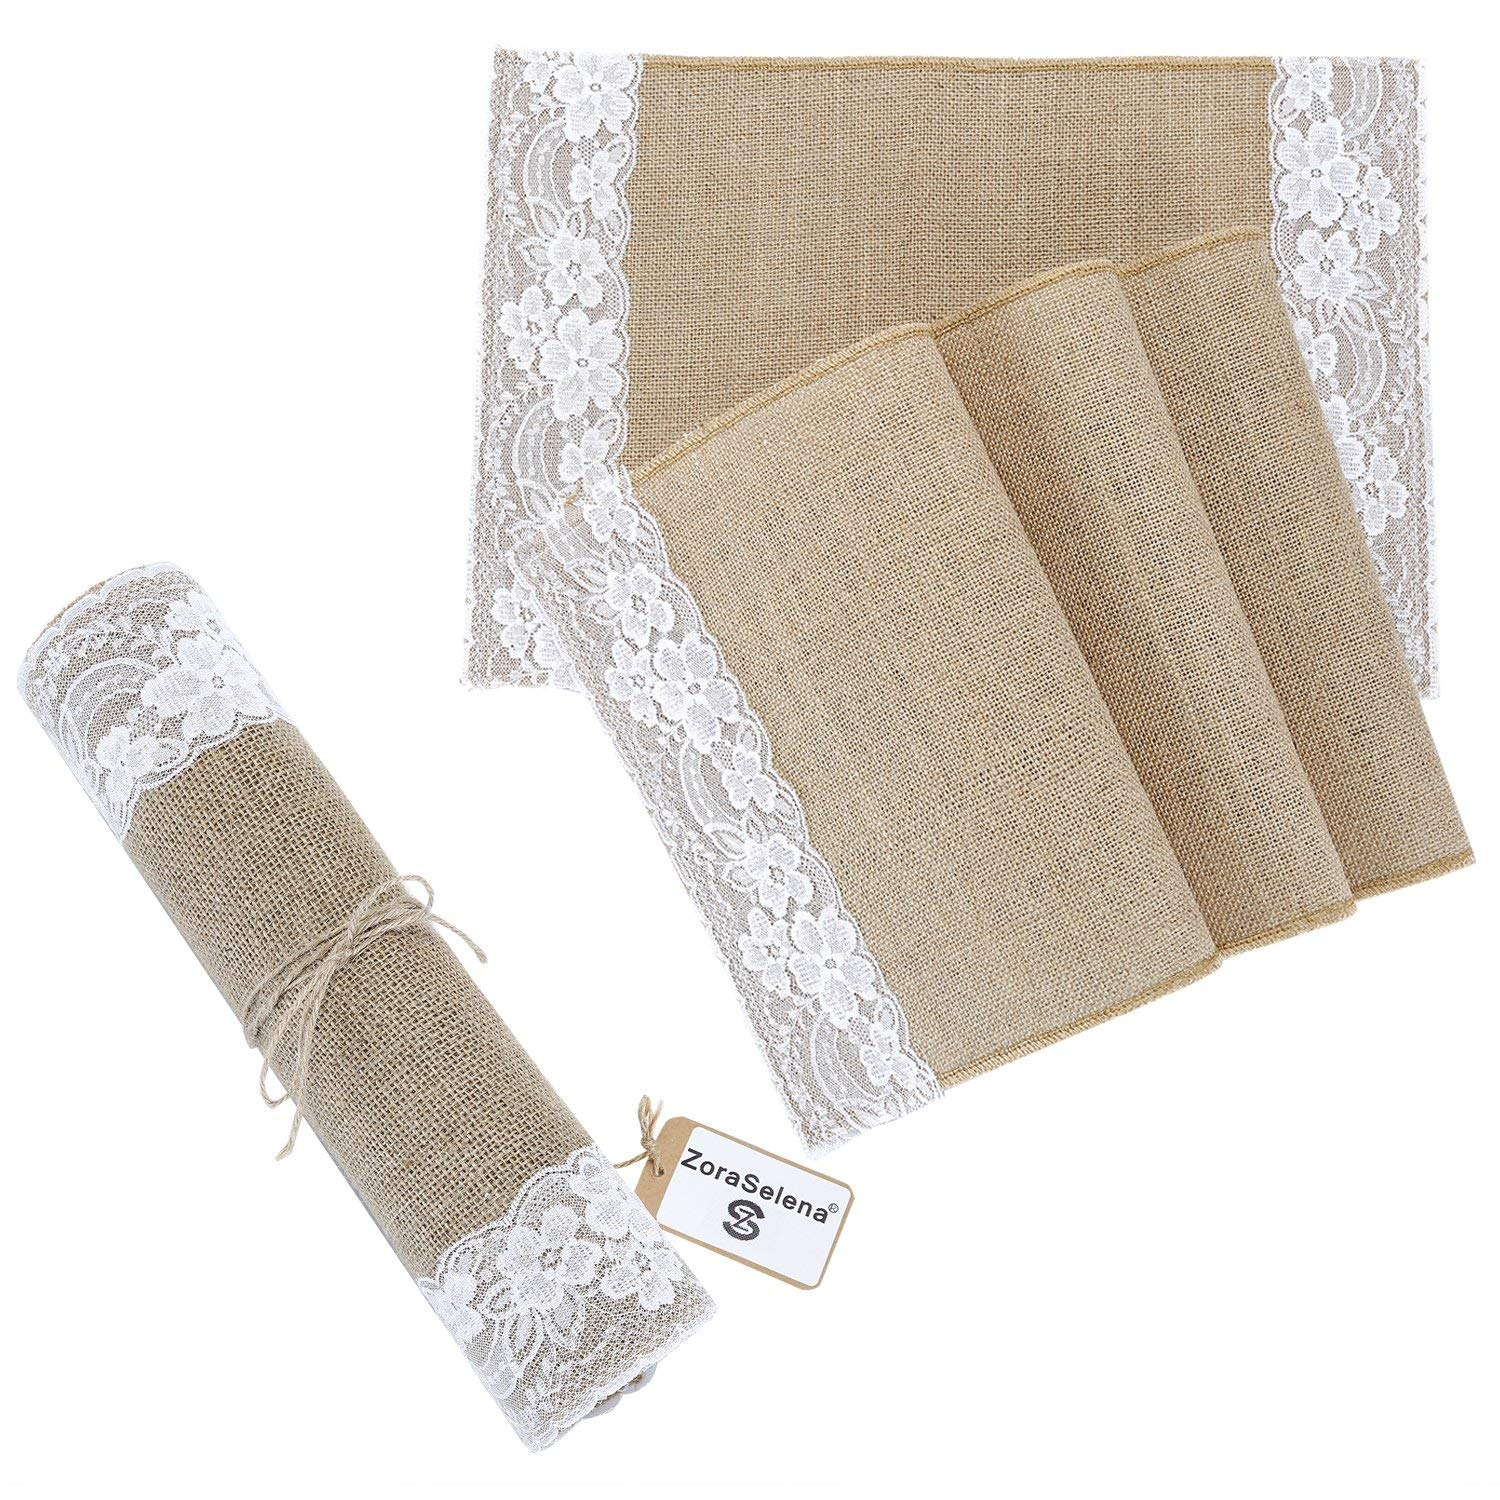 Hessian Burlap Craft Ribbon Table Runner Rustic Wedding Home Decor x 34cm